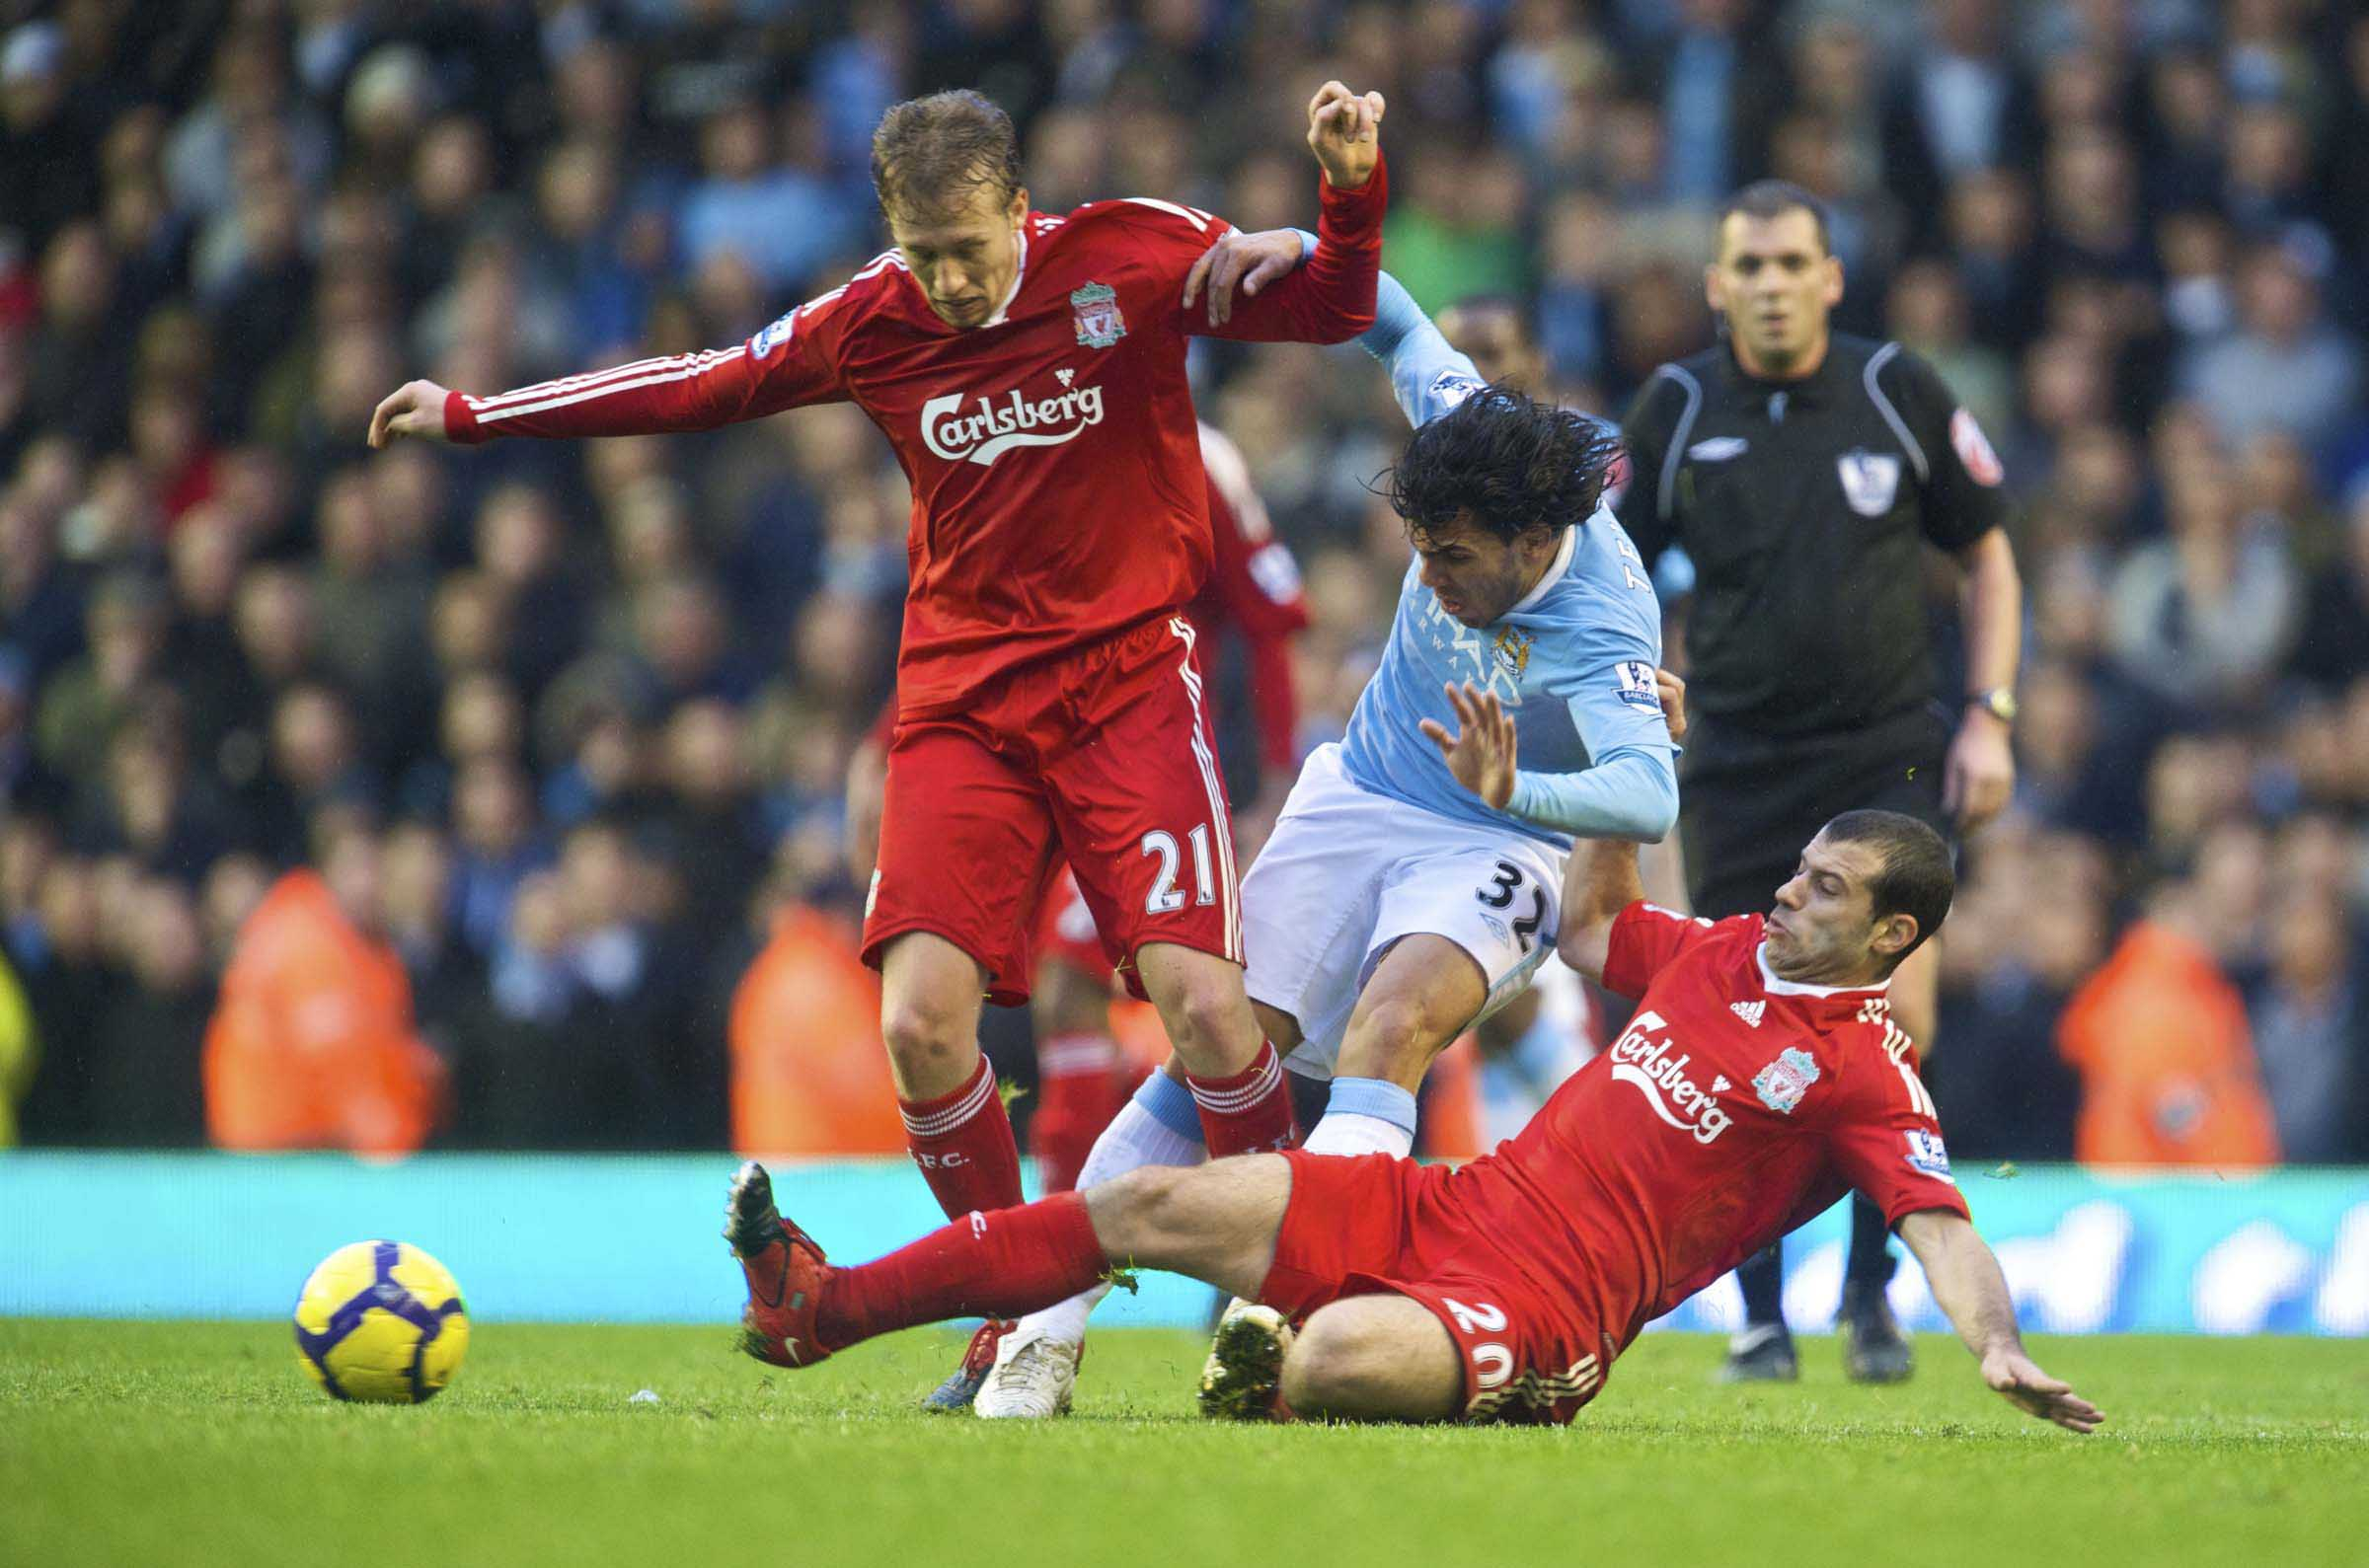 Football - FA Premier League - Liverpool FC v Manchester City FC